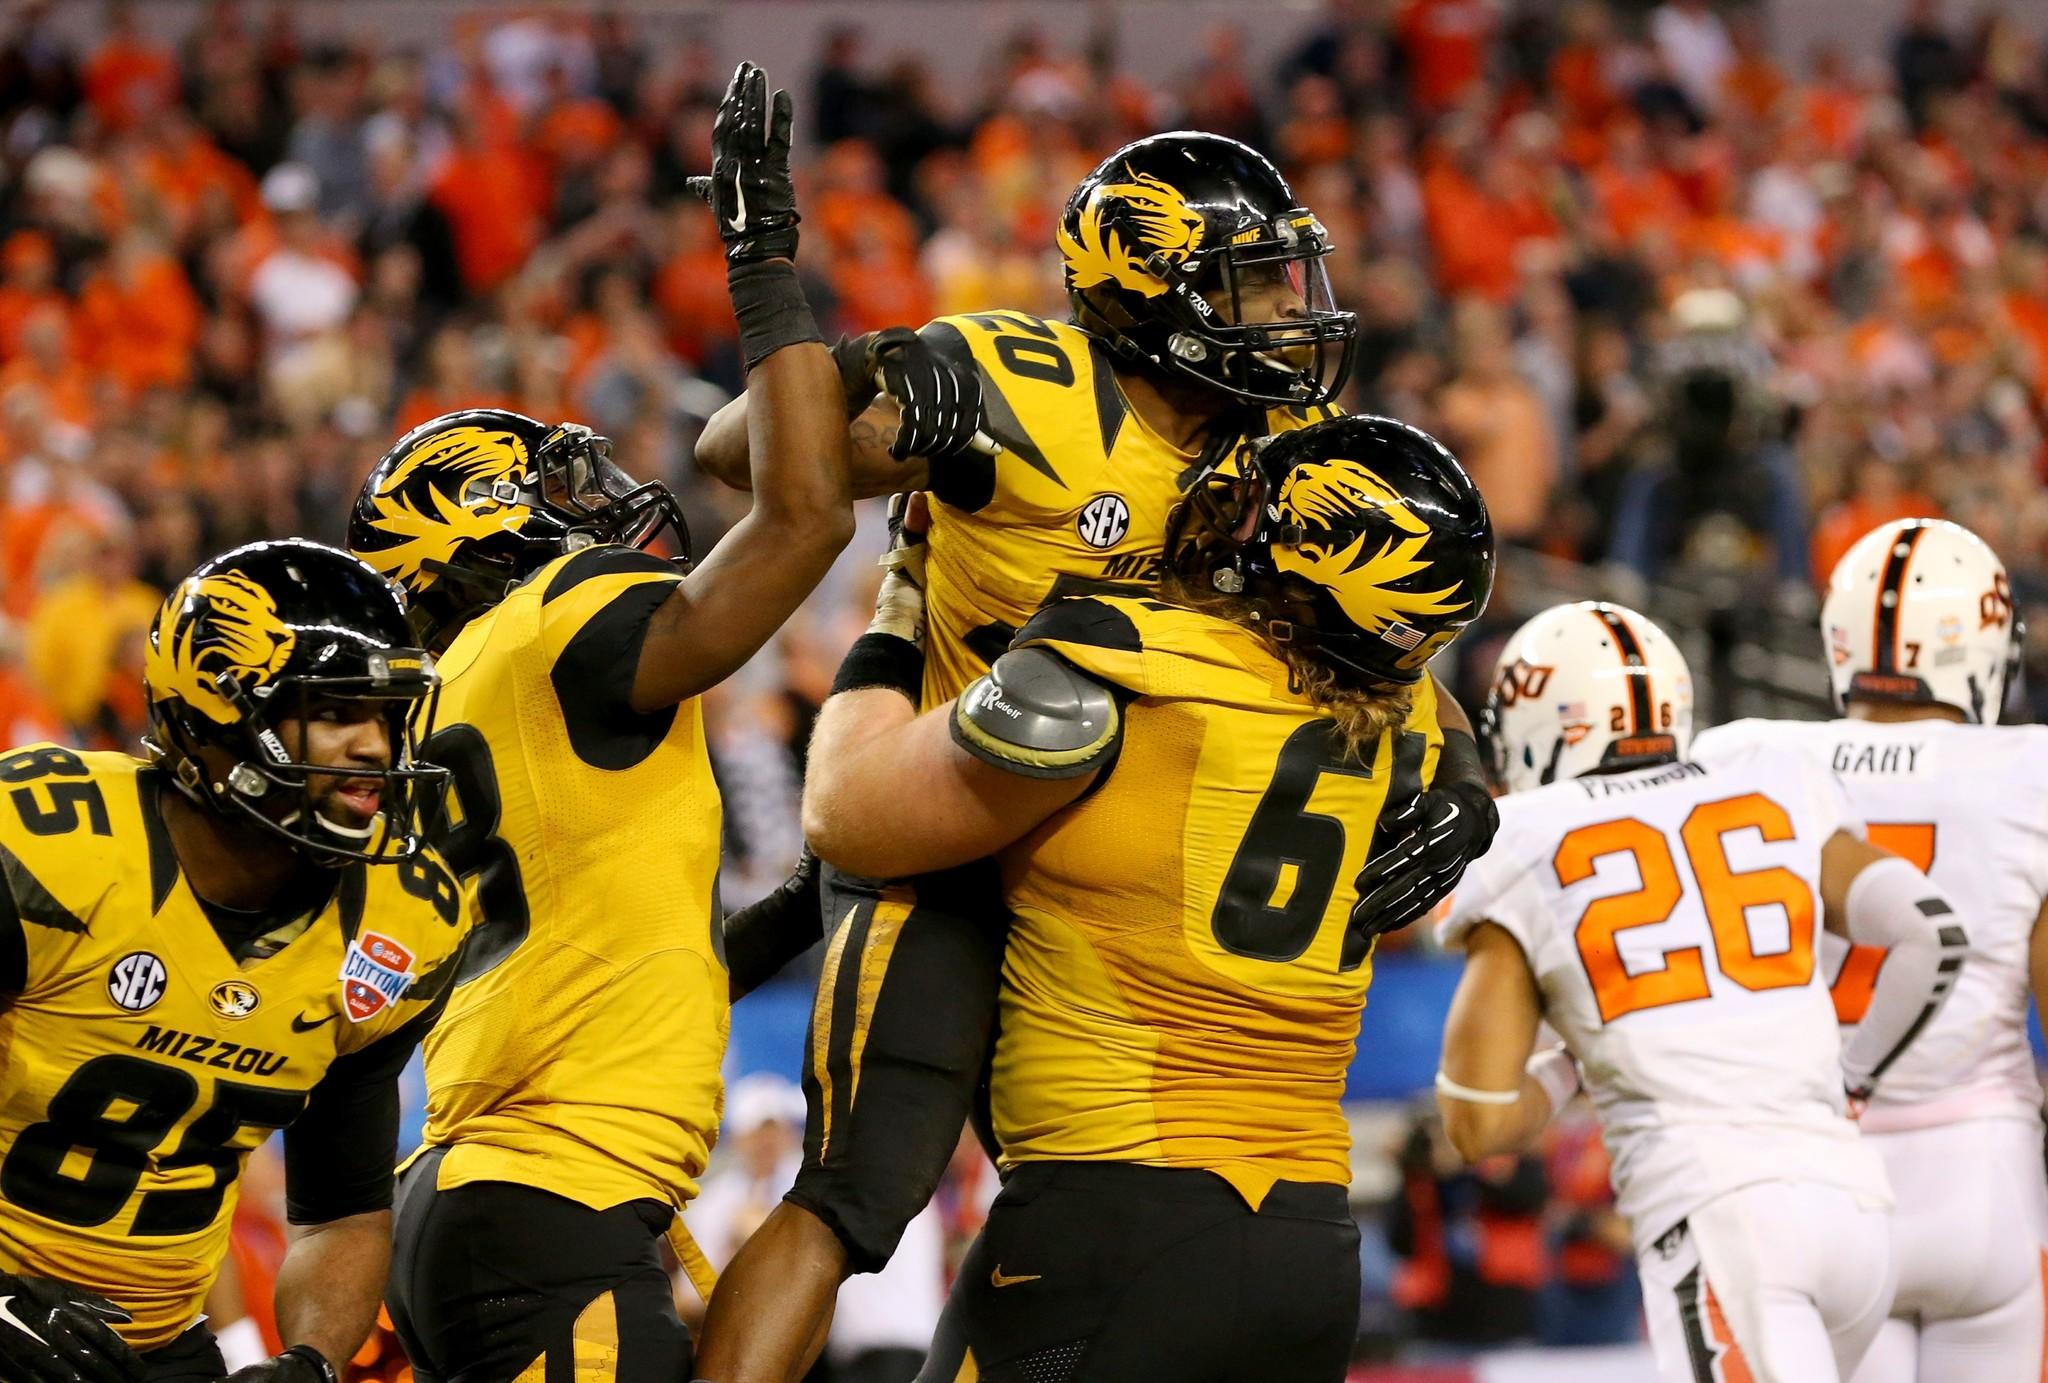 Missouri's Henry Josey celebrates scoring a 25-yard touchdown with Max Copeland in the fourth quarter.